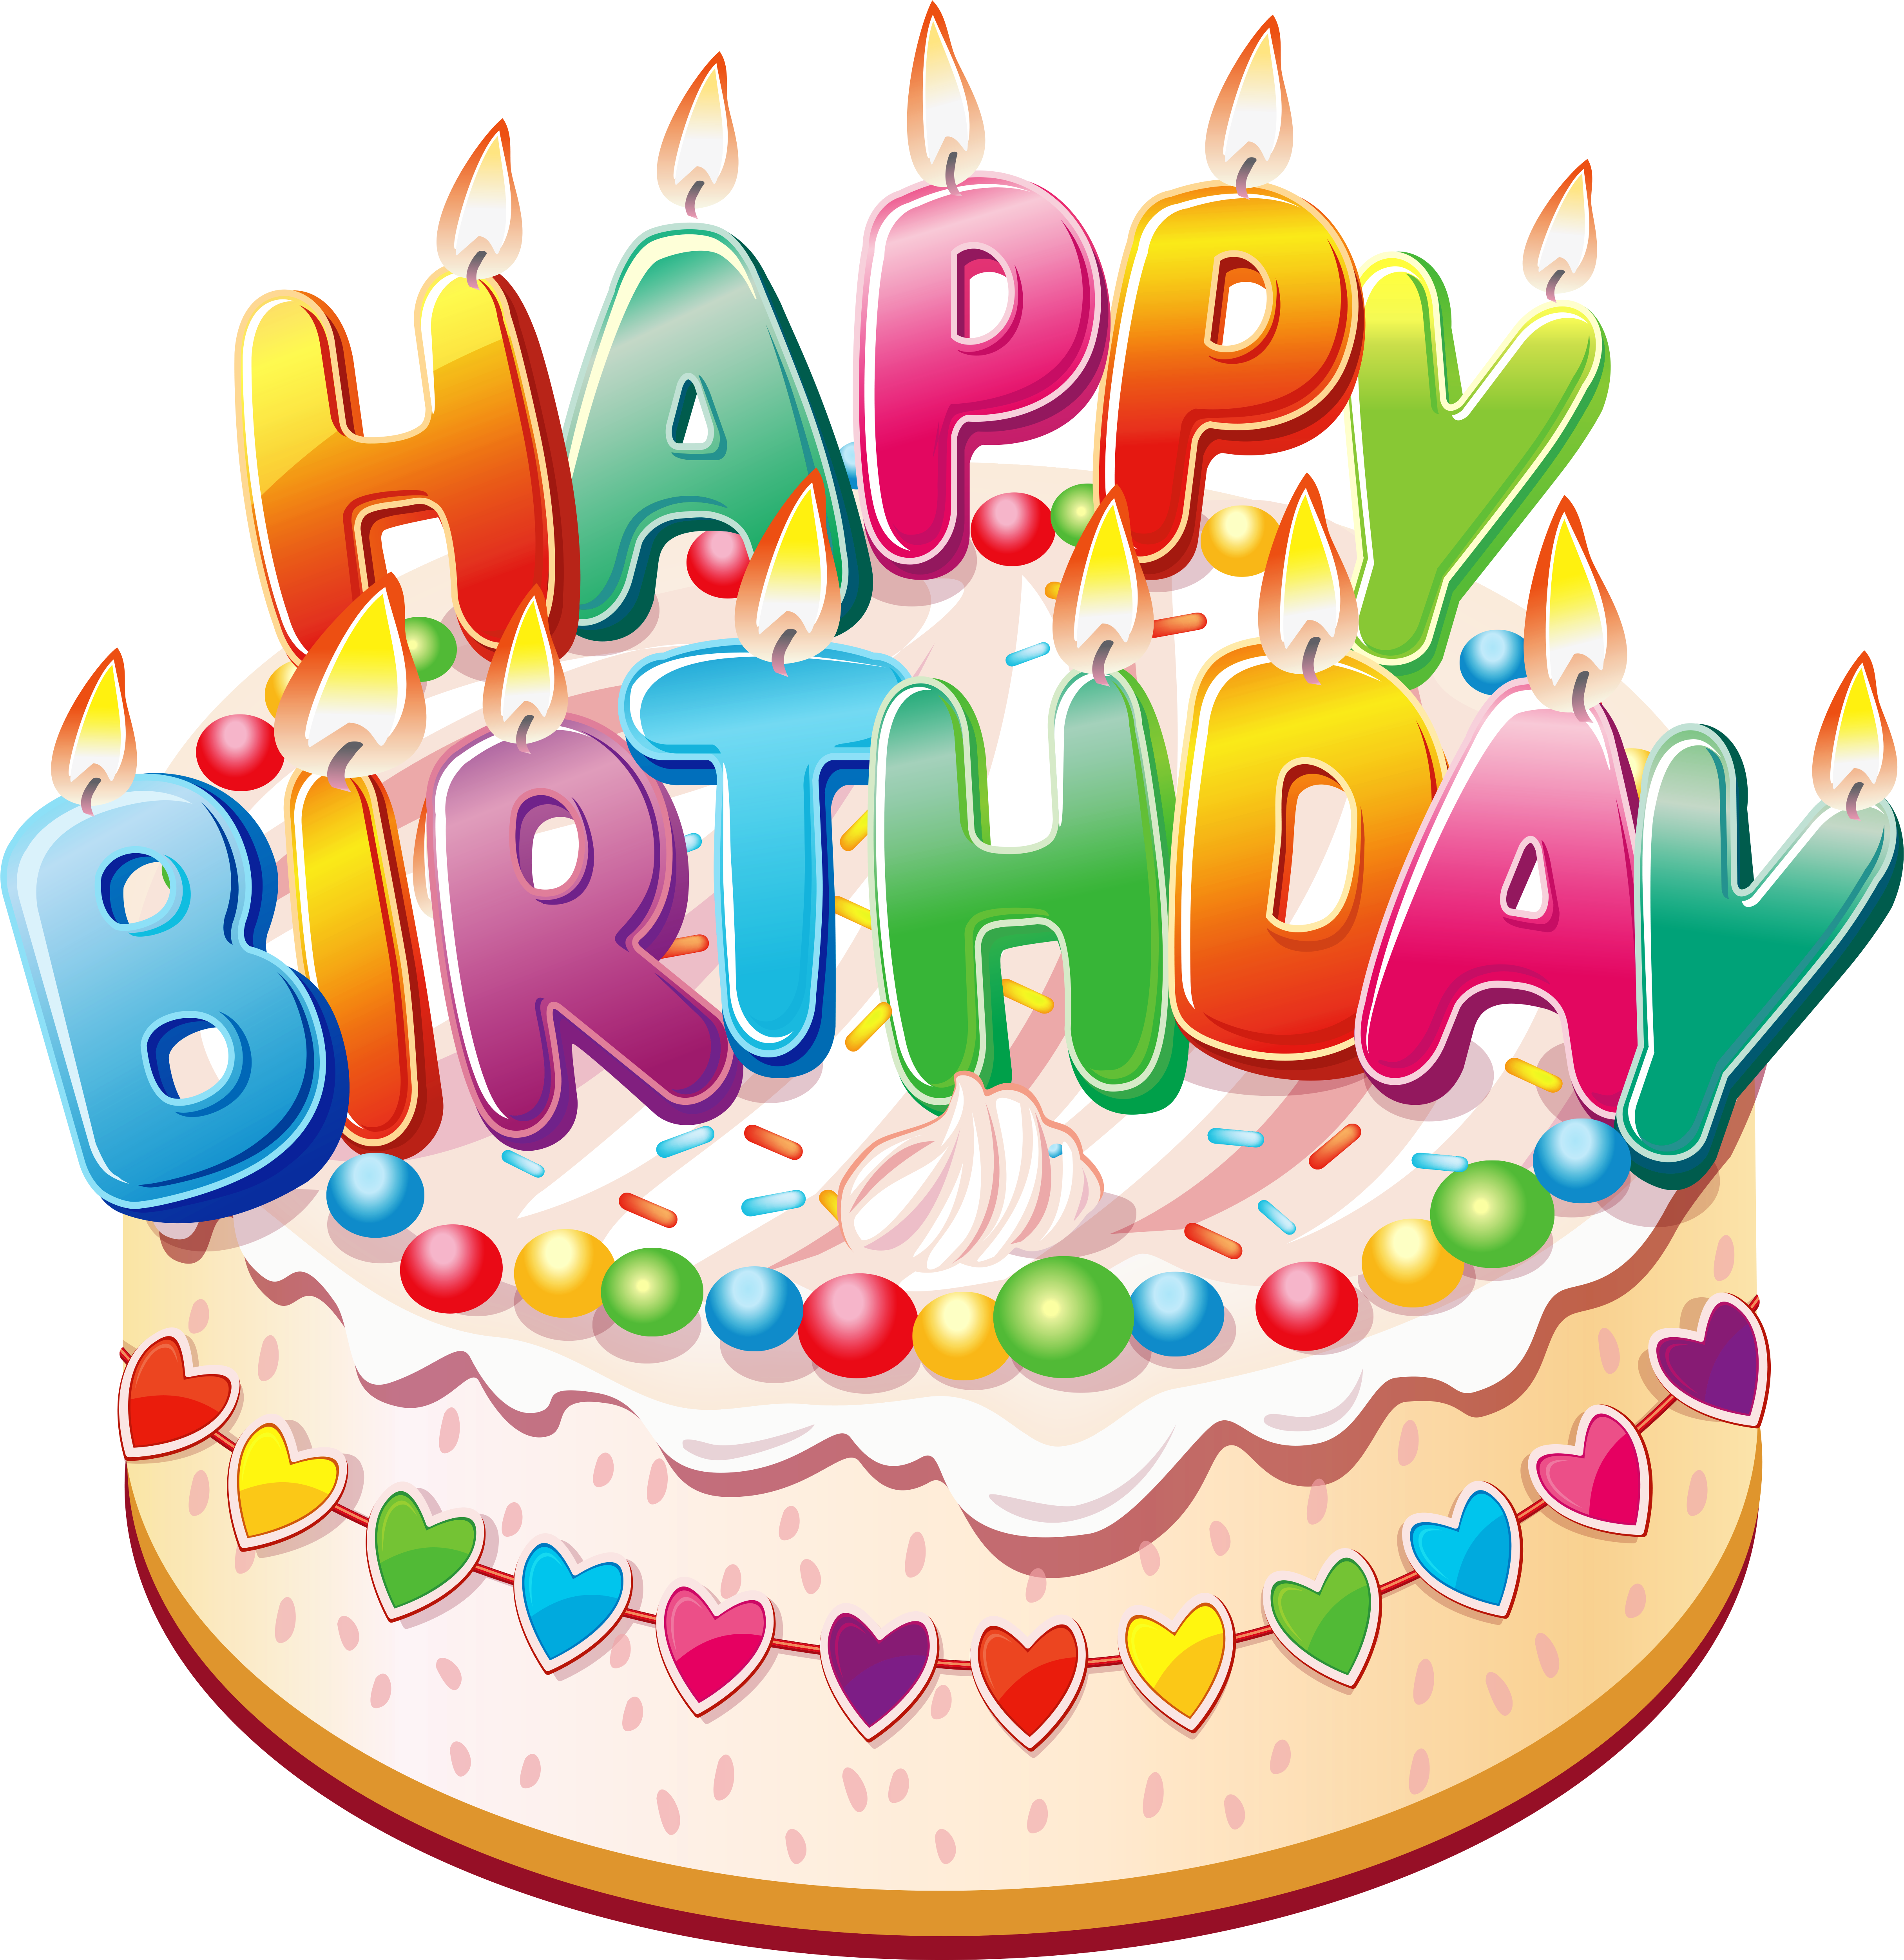 Transparent happy birthday clipart - Clipart Pictures Of Birthday Cakes Birthday Pictures - Happy Birthday Cake Png